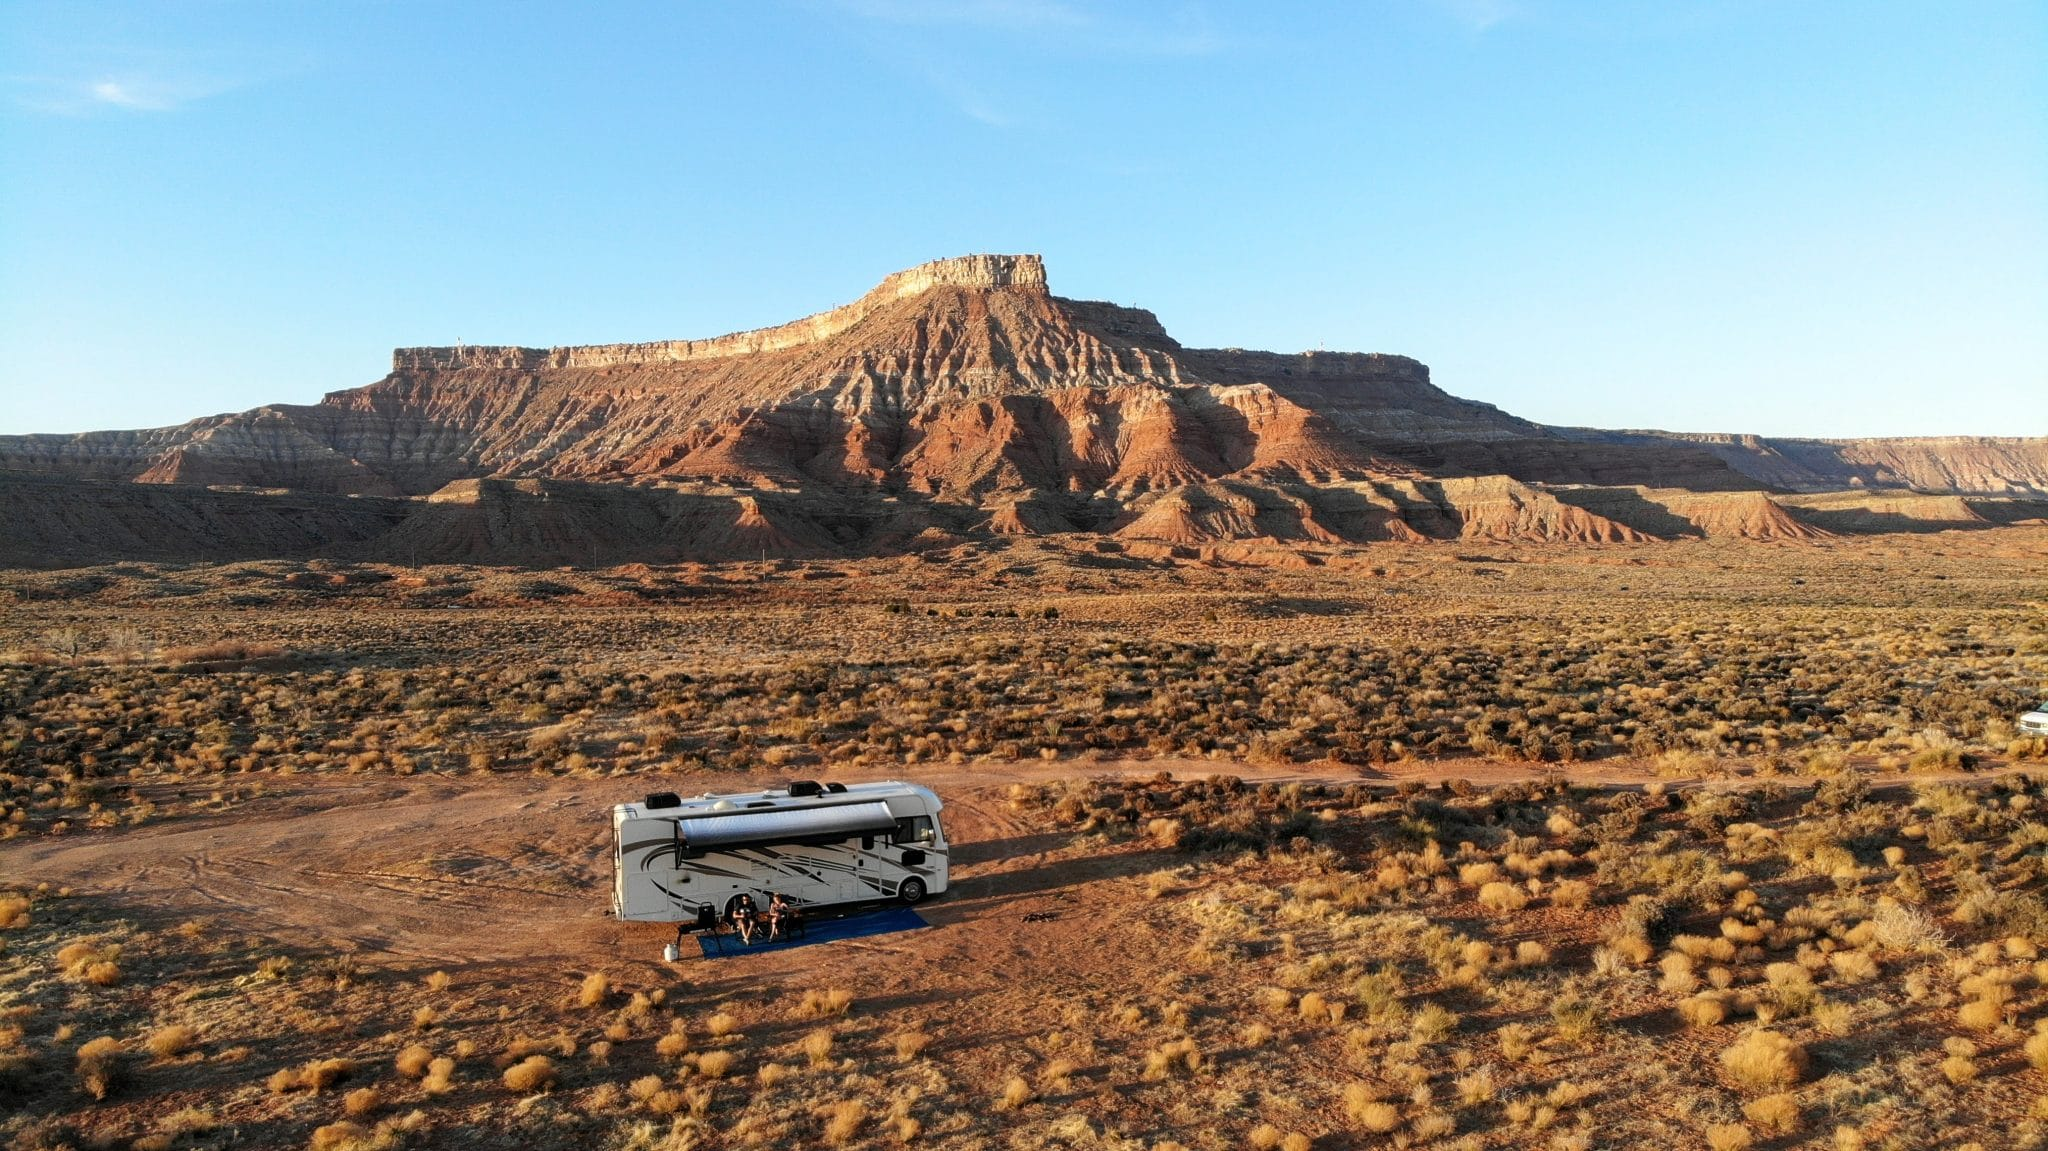 boondocking outside zion national park